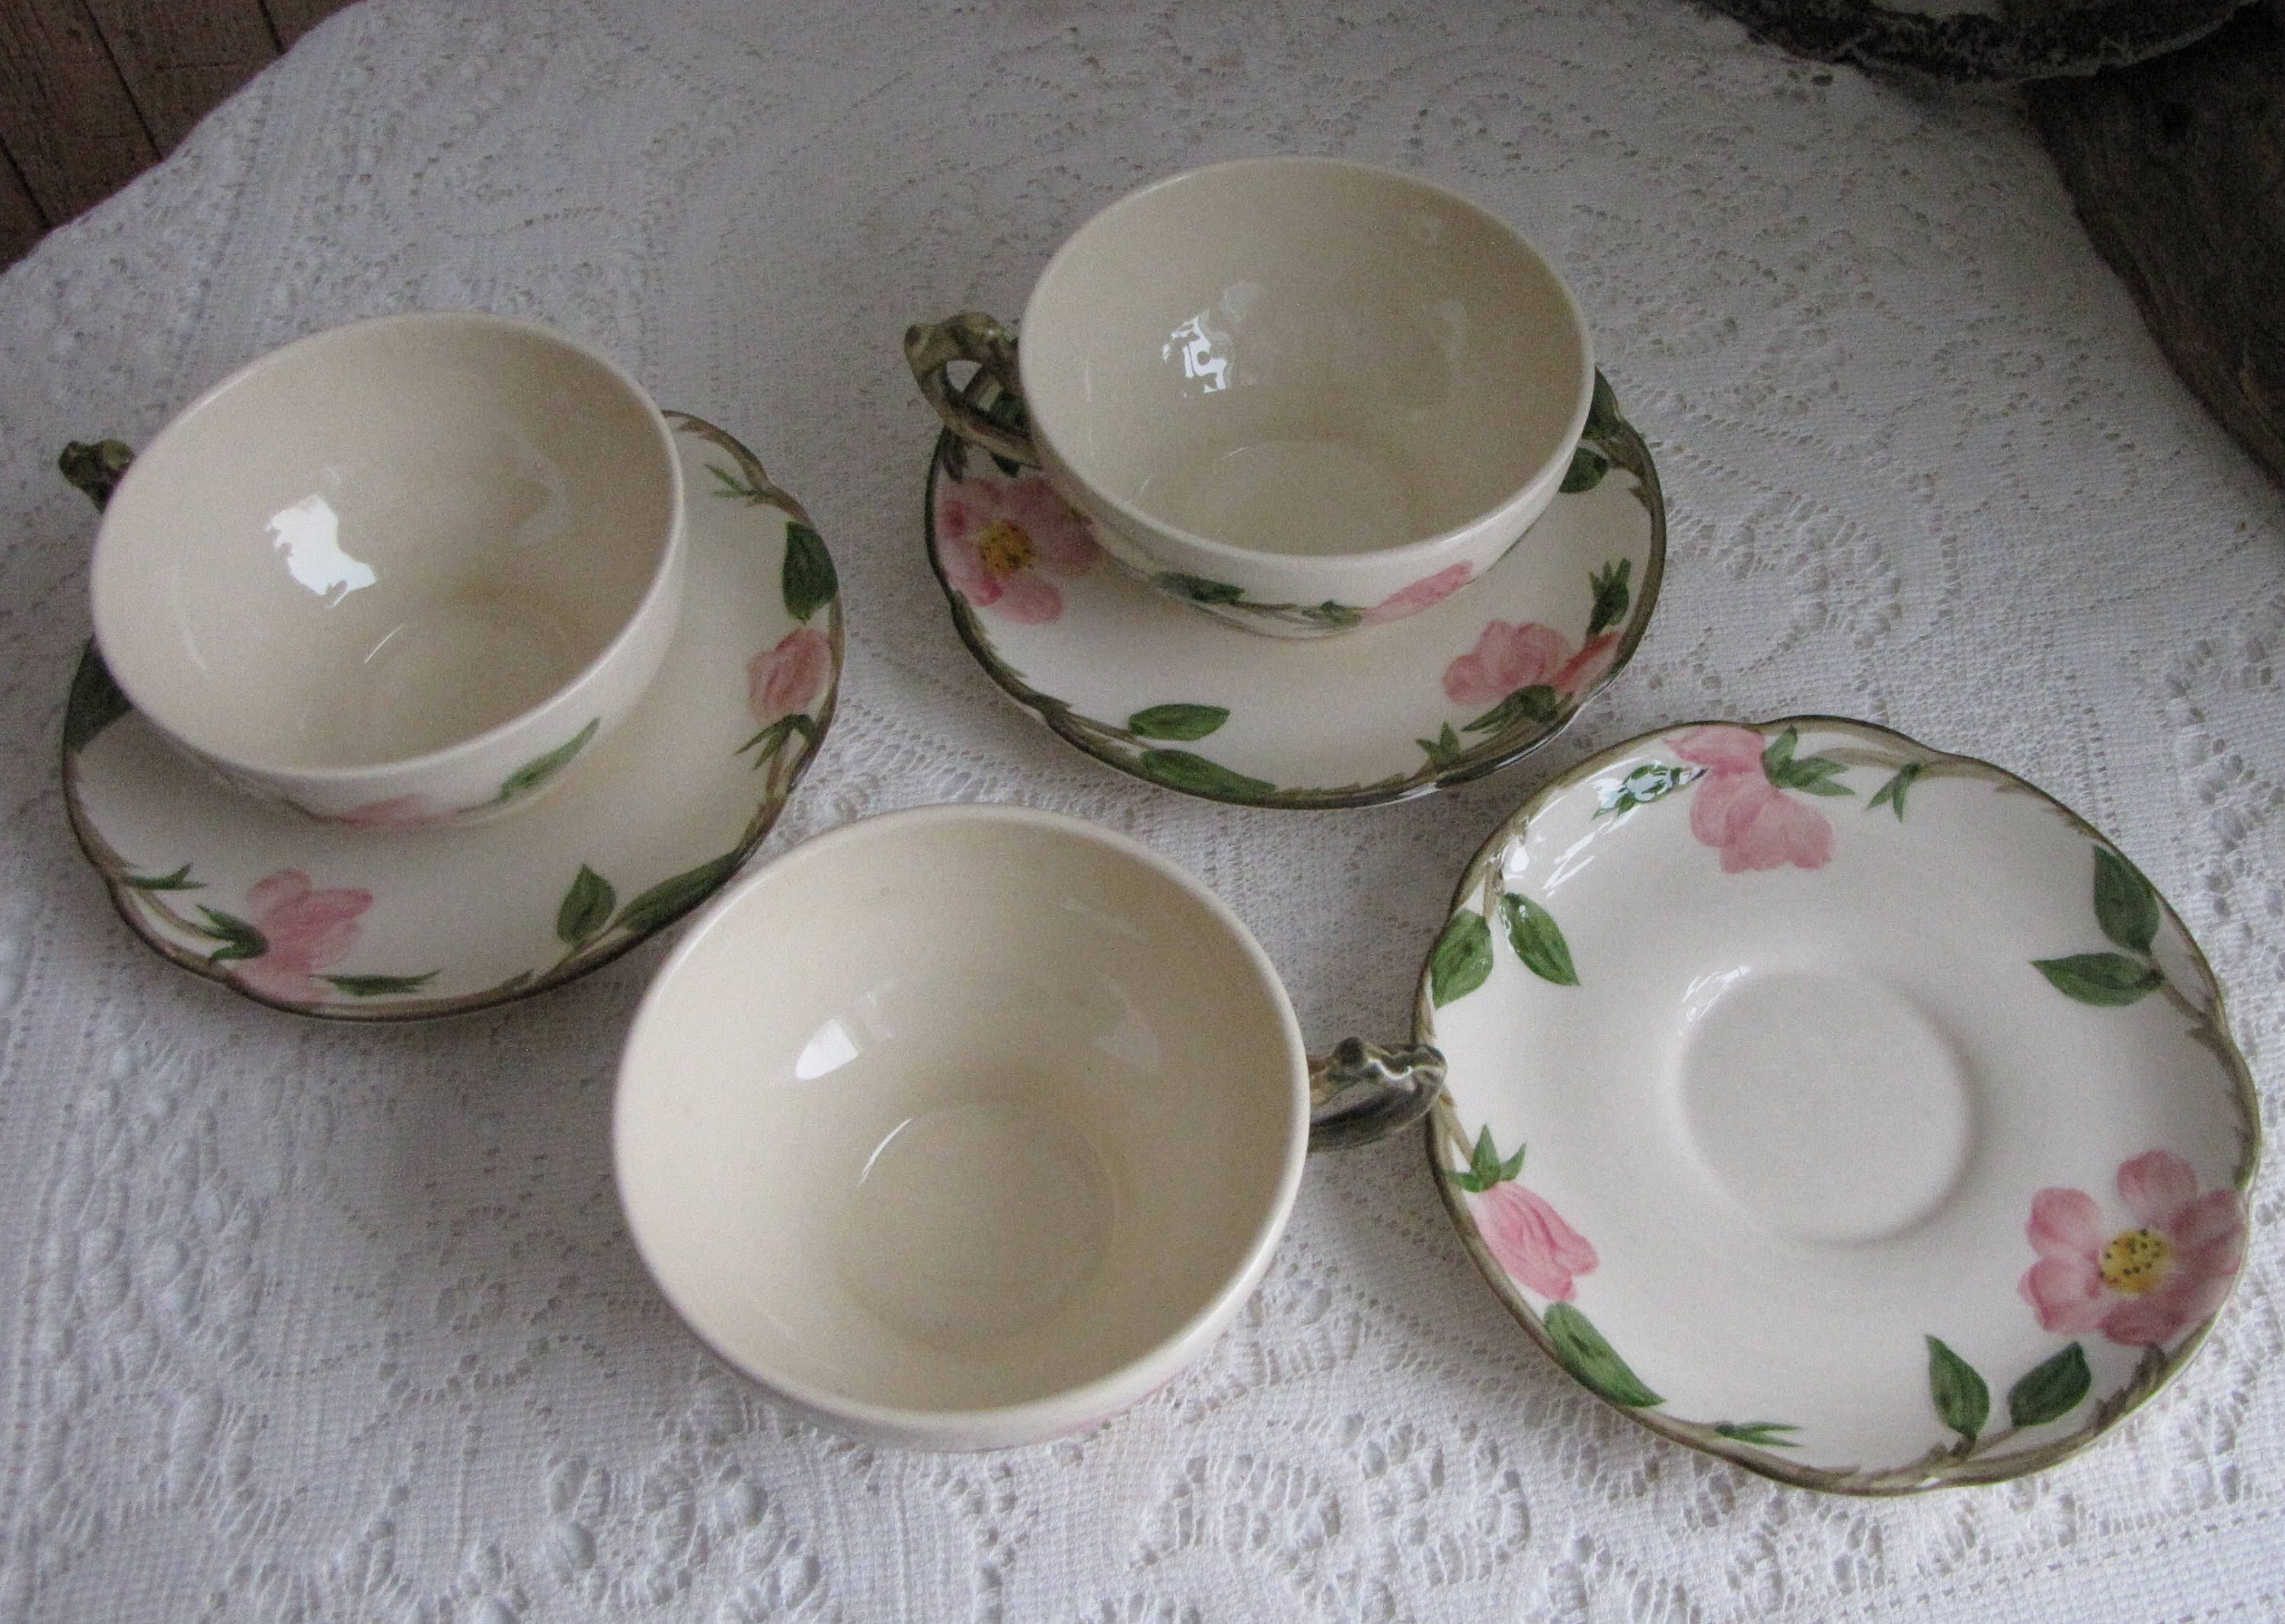 Franciscan Desert Rose Cups and Saucers Vintage Dinnerware and Replacements Set of Three (3) & Franciscan Desert Rose Cups and Saucers Vintage Dinnerware and ...